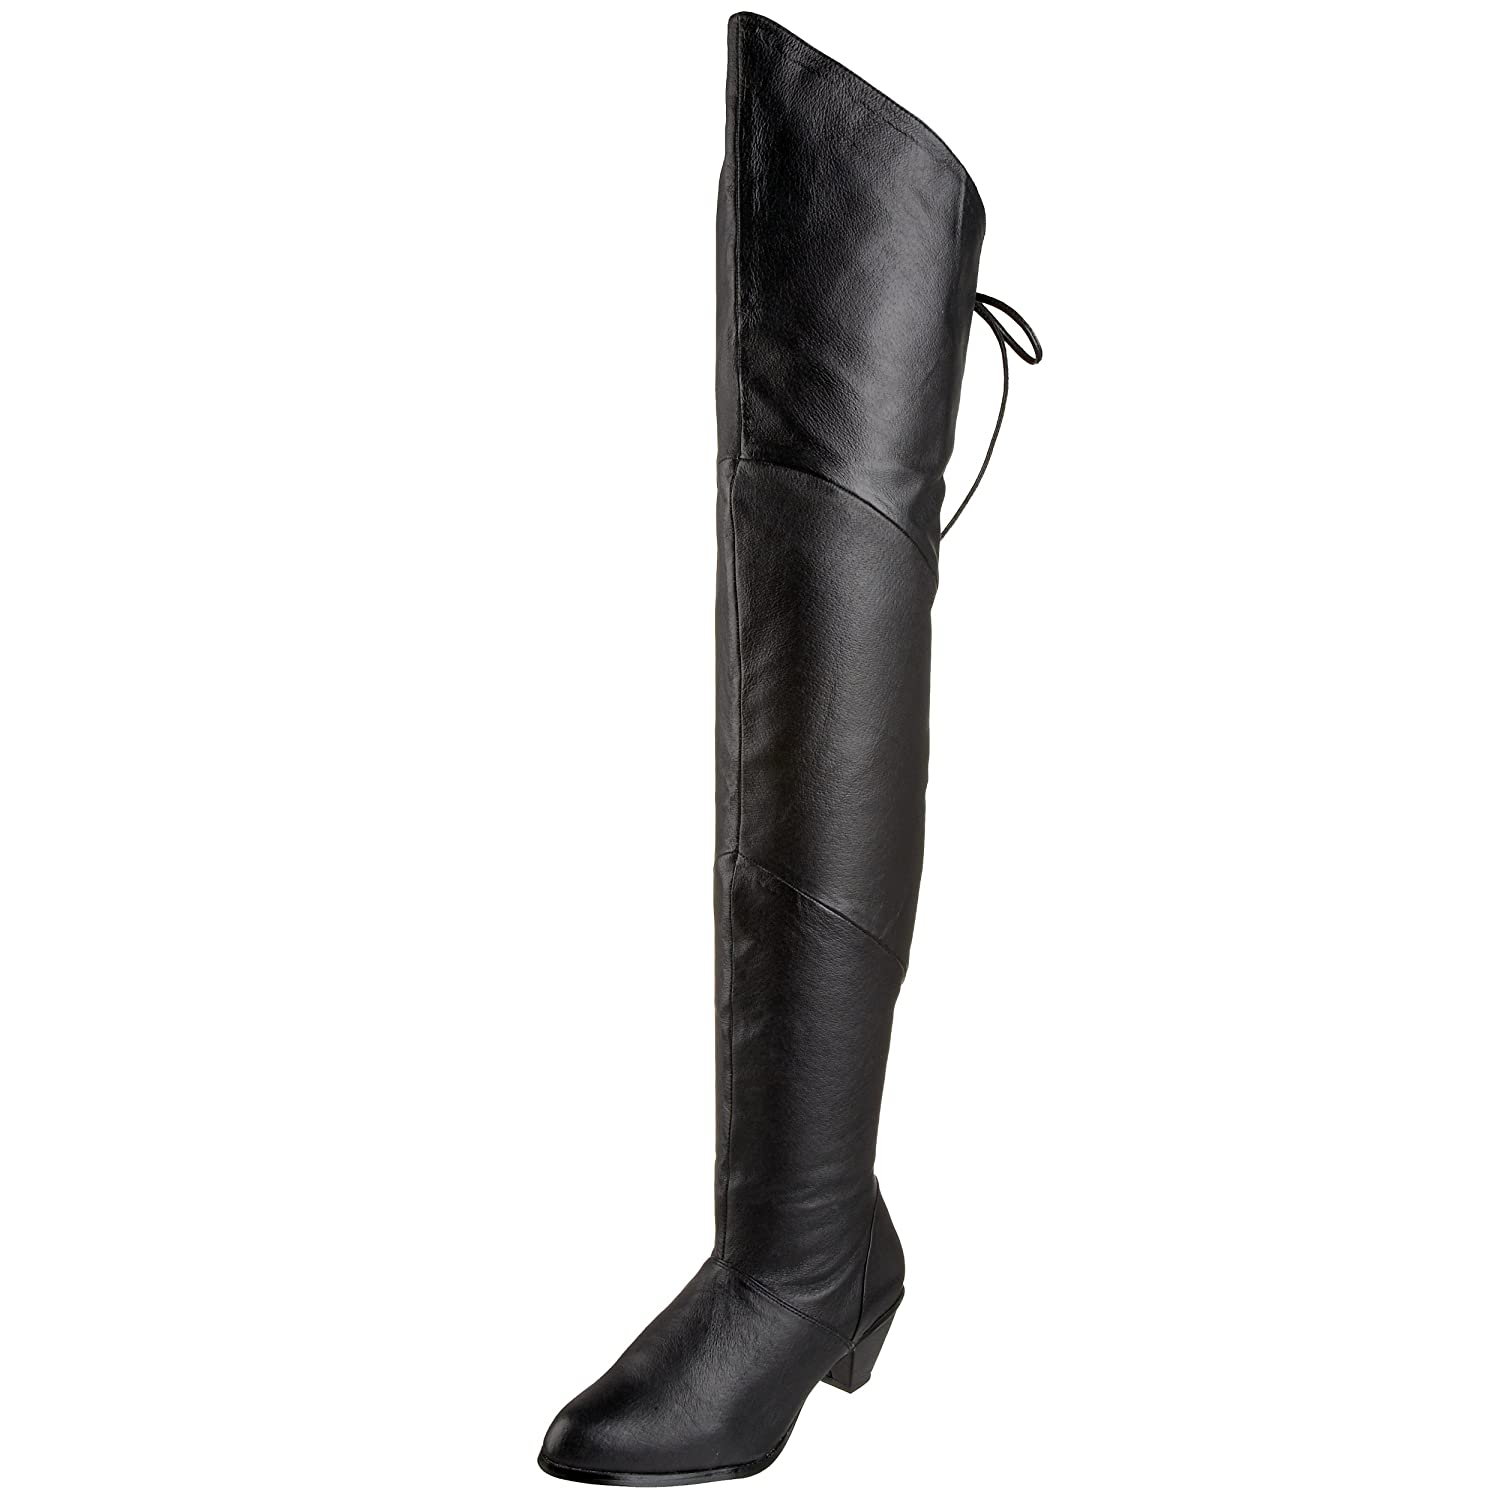 Women's Black Over the Knee Thigh High Short Heel Pig Leather Boots